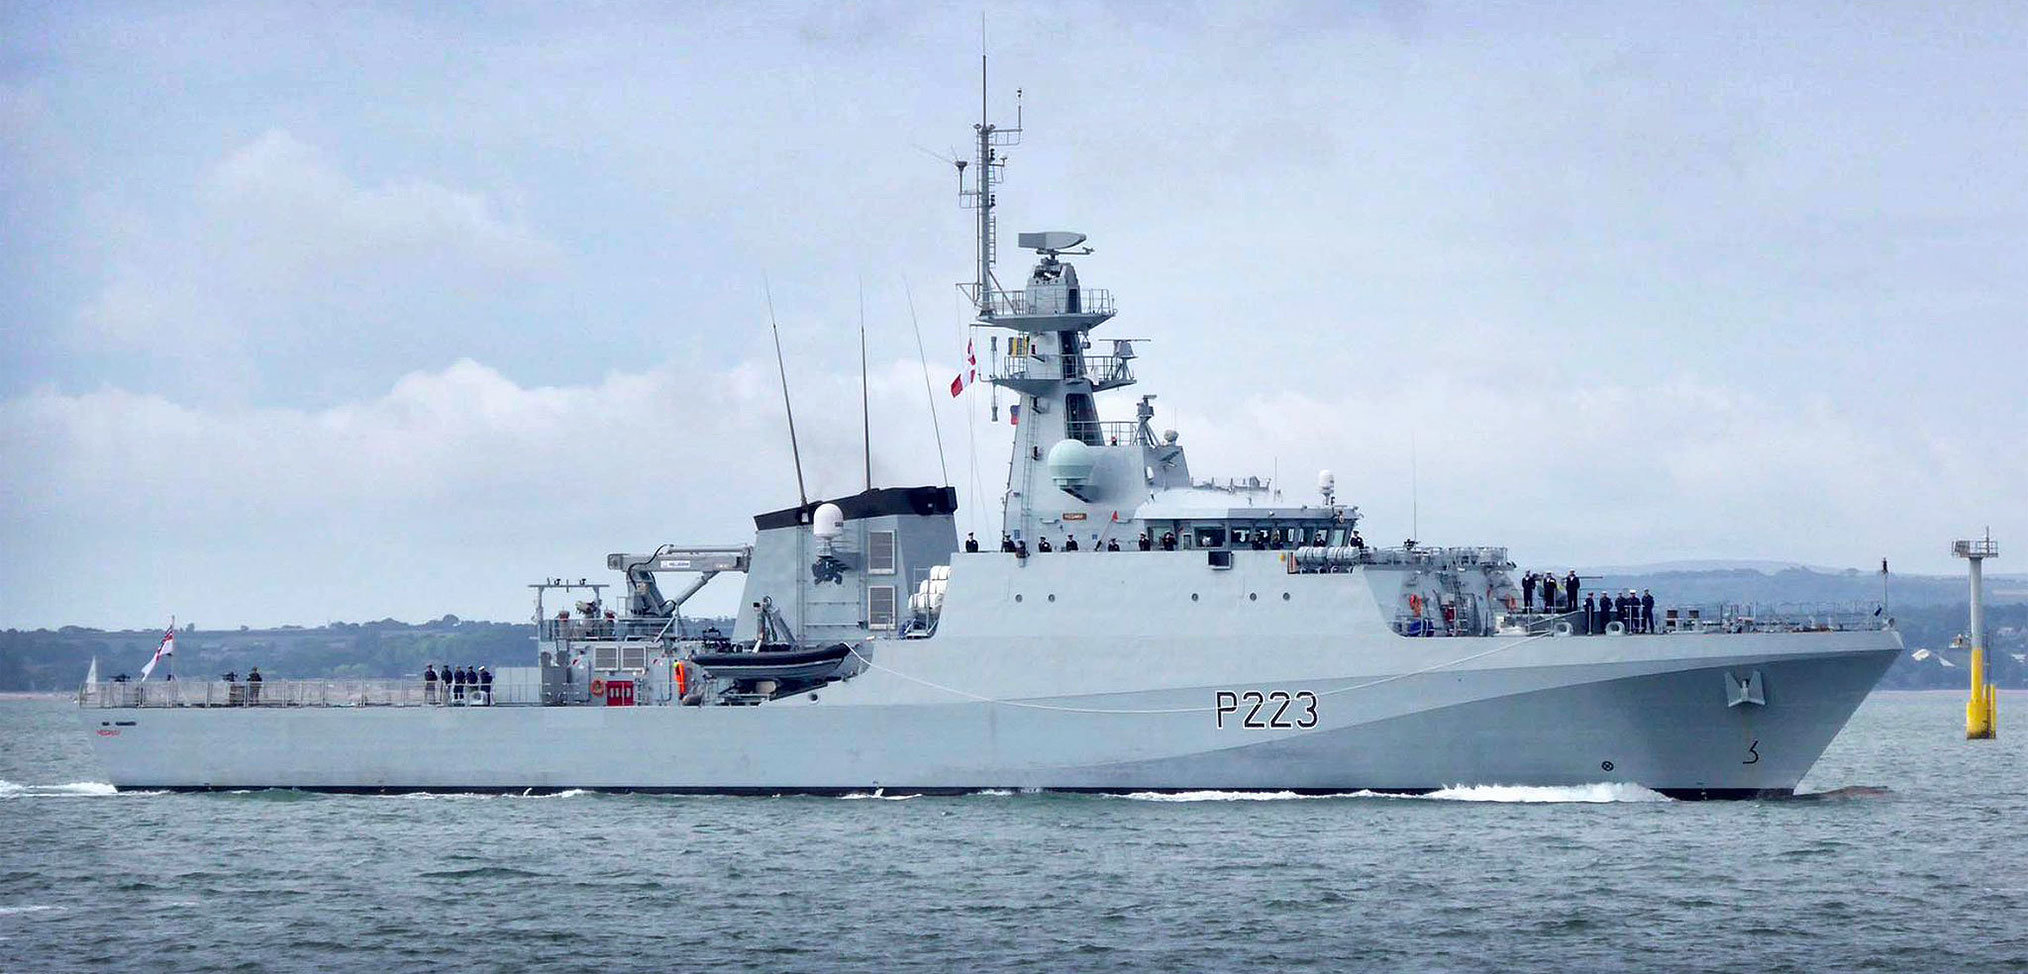 Up close with the Royal Navy's new OPVs – HMS Medway